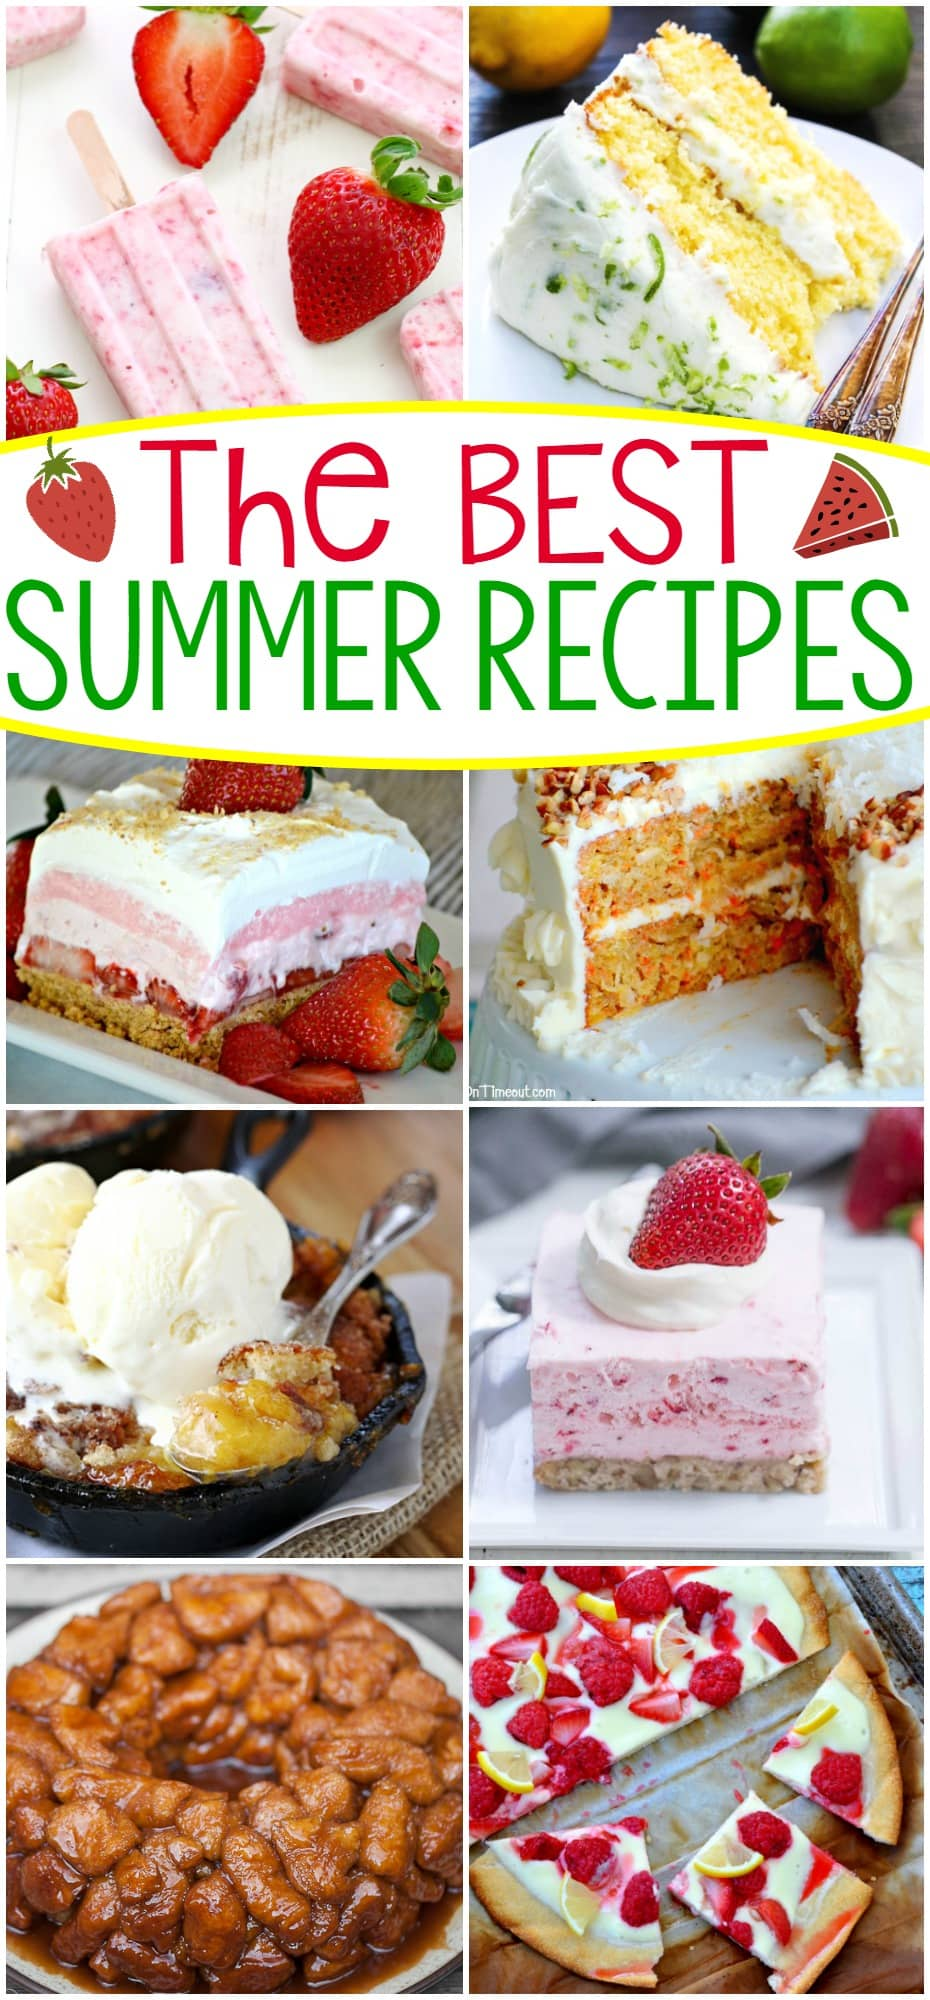 Summer isn't over yet! Add these great recipes to your summer bucket list today! Lots of the Best Summer Recipes to choose from!